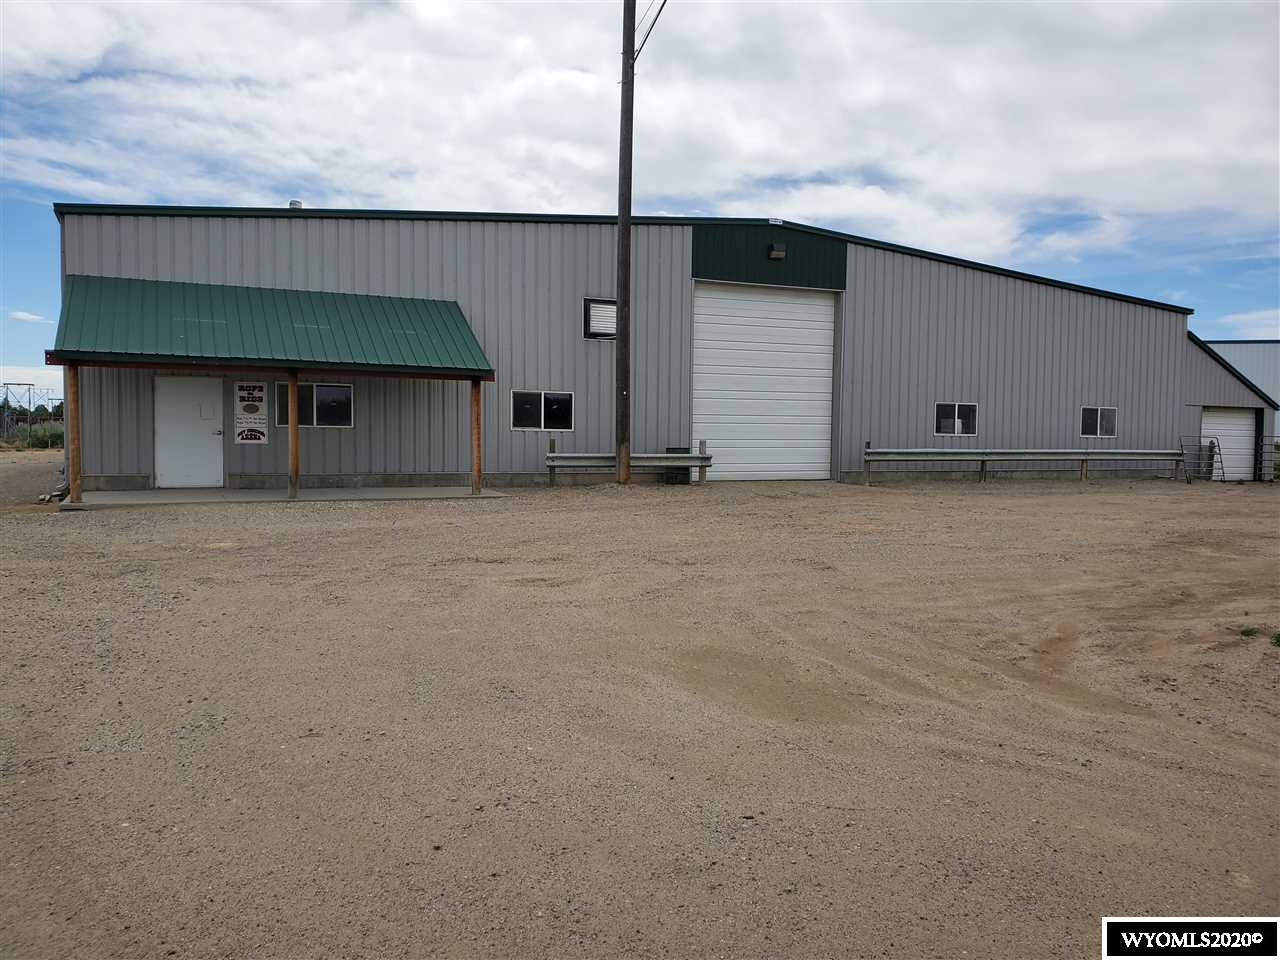 """Great investment opportunity.  100' X 225' dirt floor indoor arena with 16' X 225' (3,600 sf) Lean-To addition & 810 sq. ft. addition with overhead door.  Covered hay storage and 2 loafing sheds on site. Wire fence around entire 3.75 acres in city limits.  Corral Panel at the back of the arena stay. """"As Is, Where Is"""""""